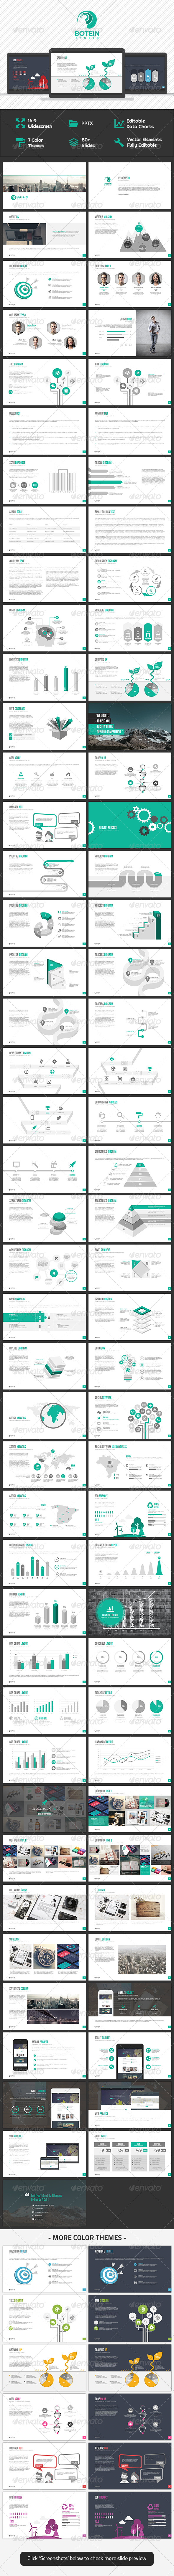 GraphicRiver Botein Powerpoint Template 8585458